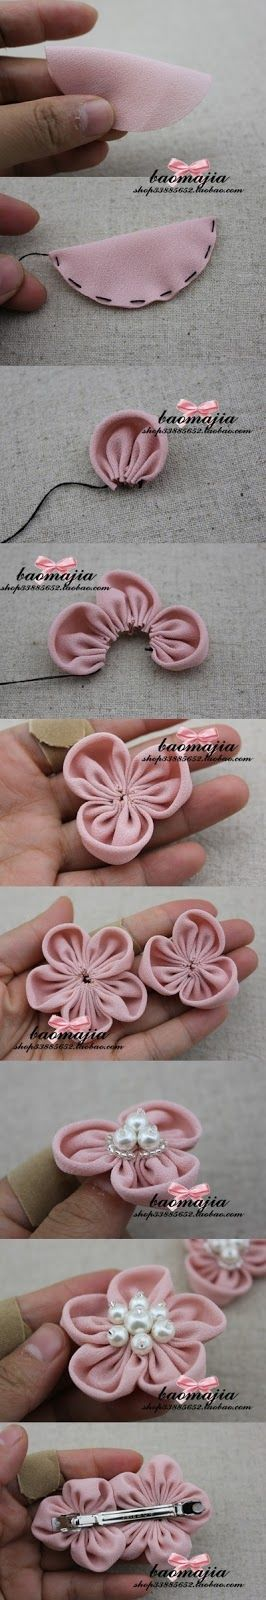 easy DIY fabric flower pins - http://www.joybobo.com/2013/06/cute-and-easy-diy-fabric-flower-pins.html?m=1